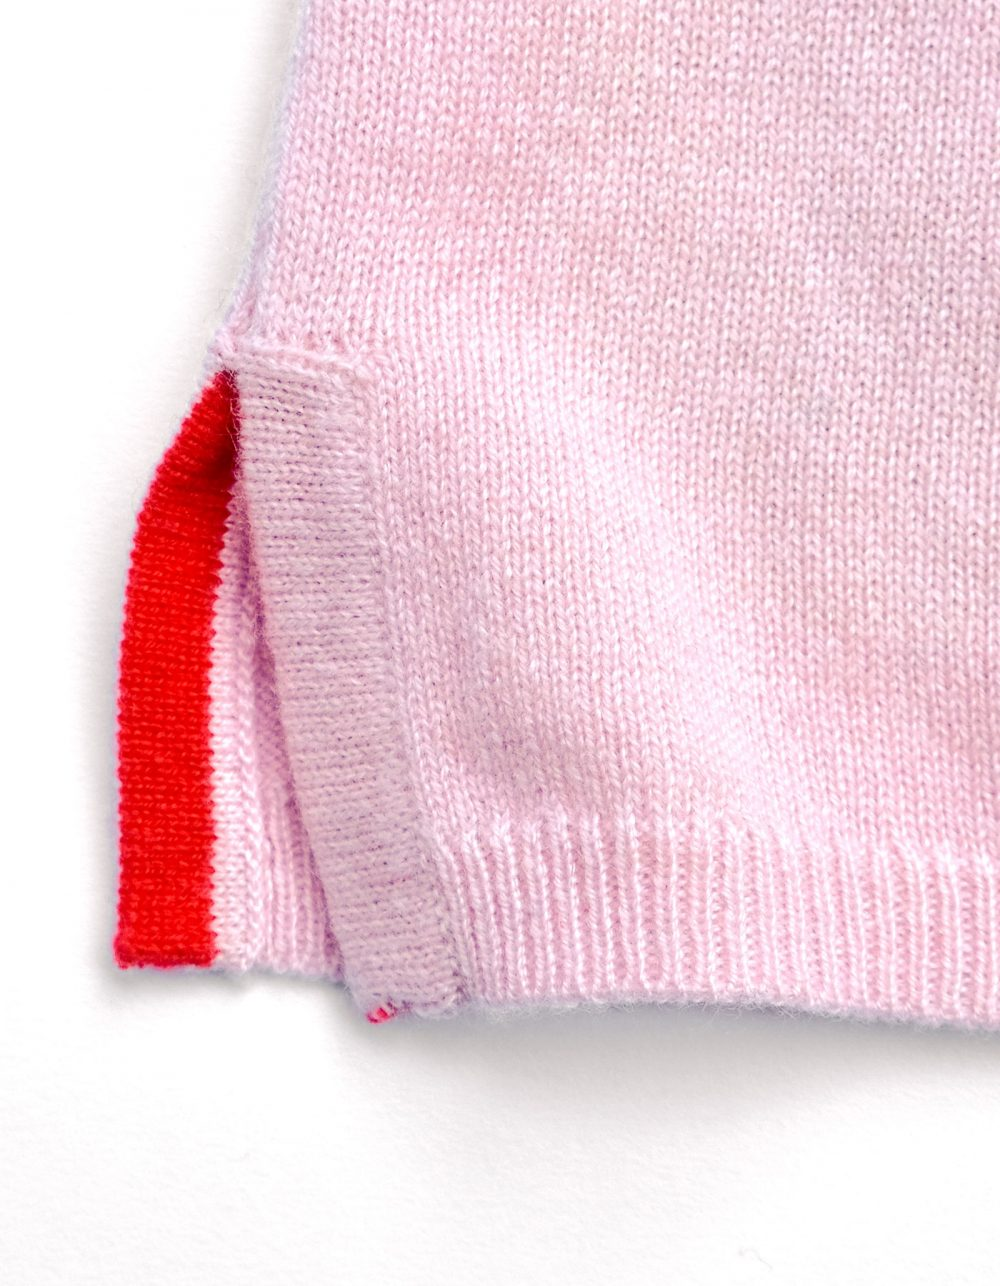 Darlin Pink Cashmere Jumper by Malin Darlin